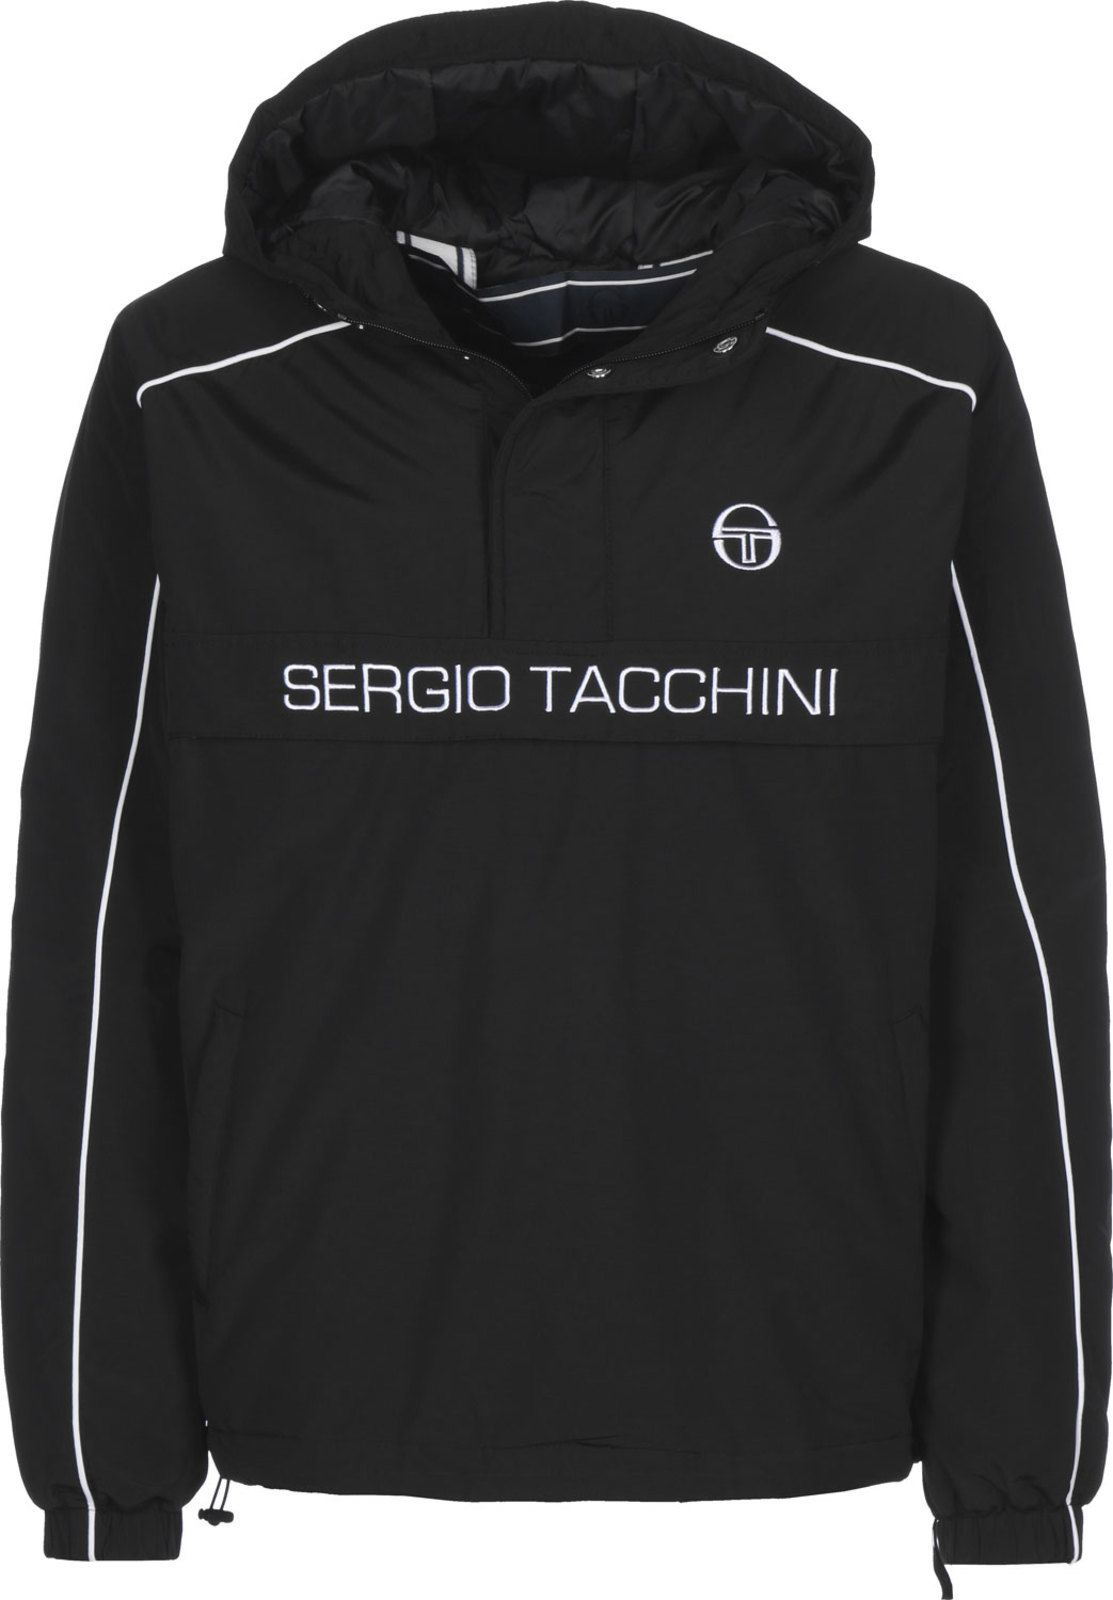 Details about Sergio Tacchini Dabou Anorak Popover Hooded Jacket